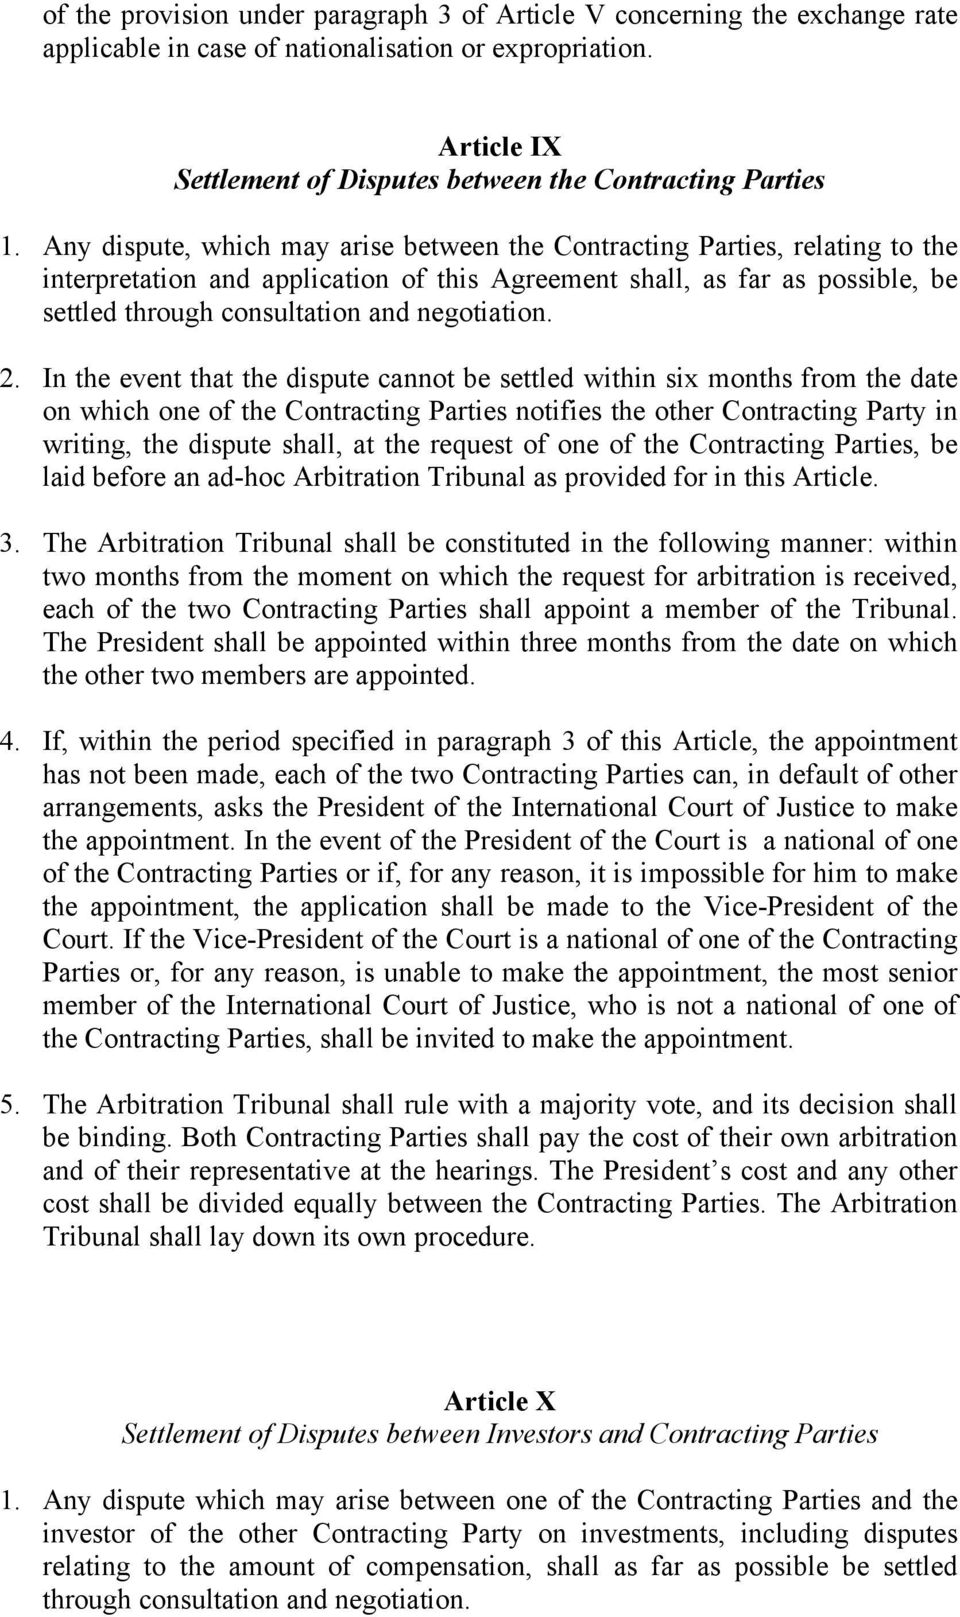 Any dispute, which may arise between the Contracting Parties, relating to the interpretation and application of this Agreement shall, as far as possible, be settled through consultation and